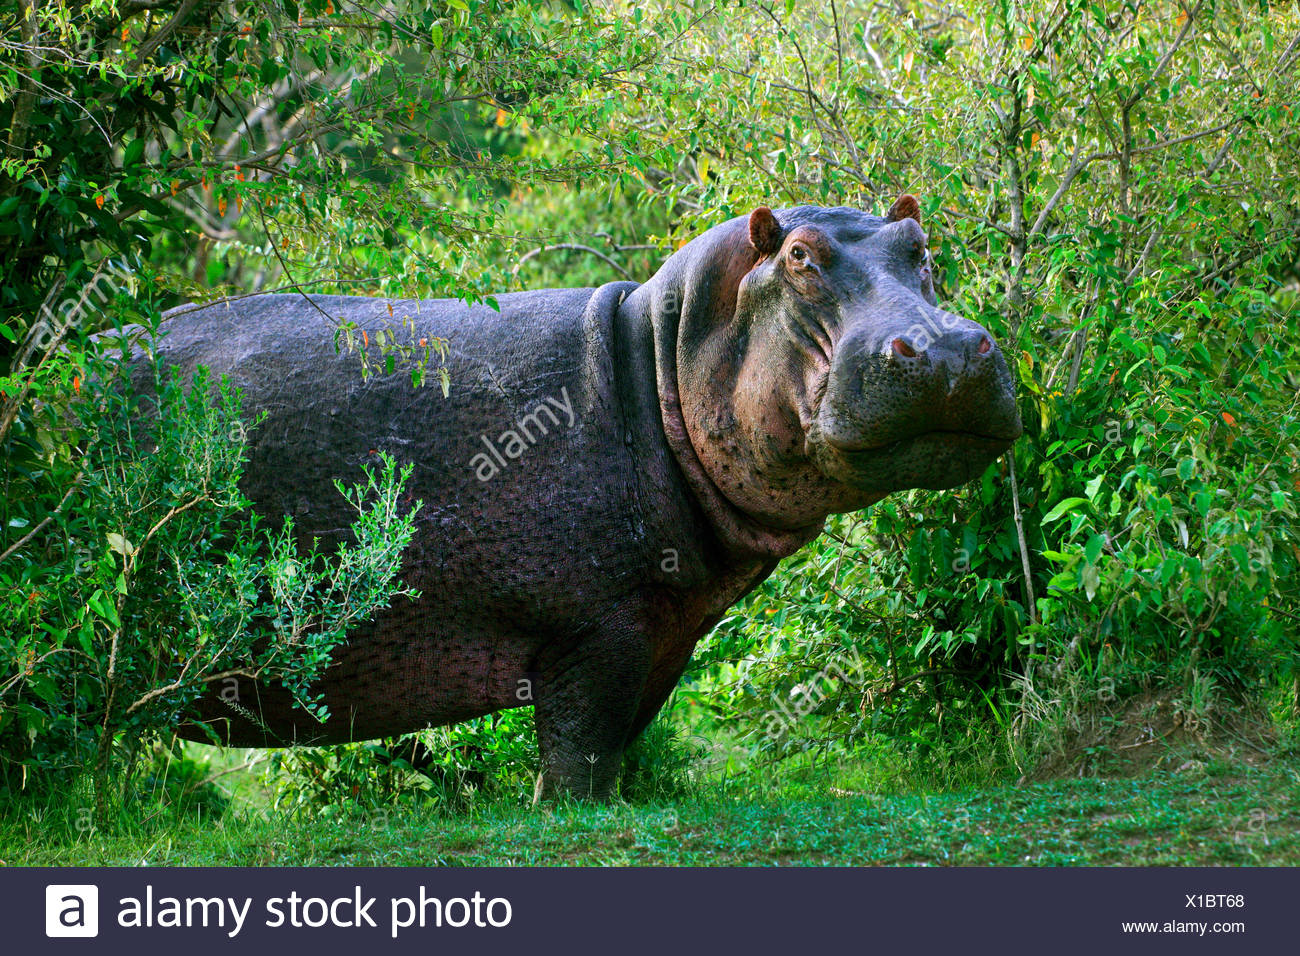 hippopotamus, hippo, Common hippopotamus (Hippopotamus amphibius), in thicket, Africa - Stock Image